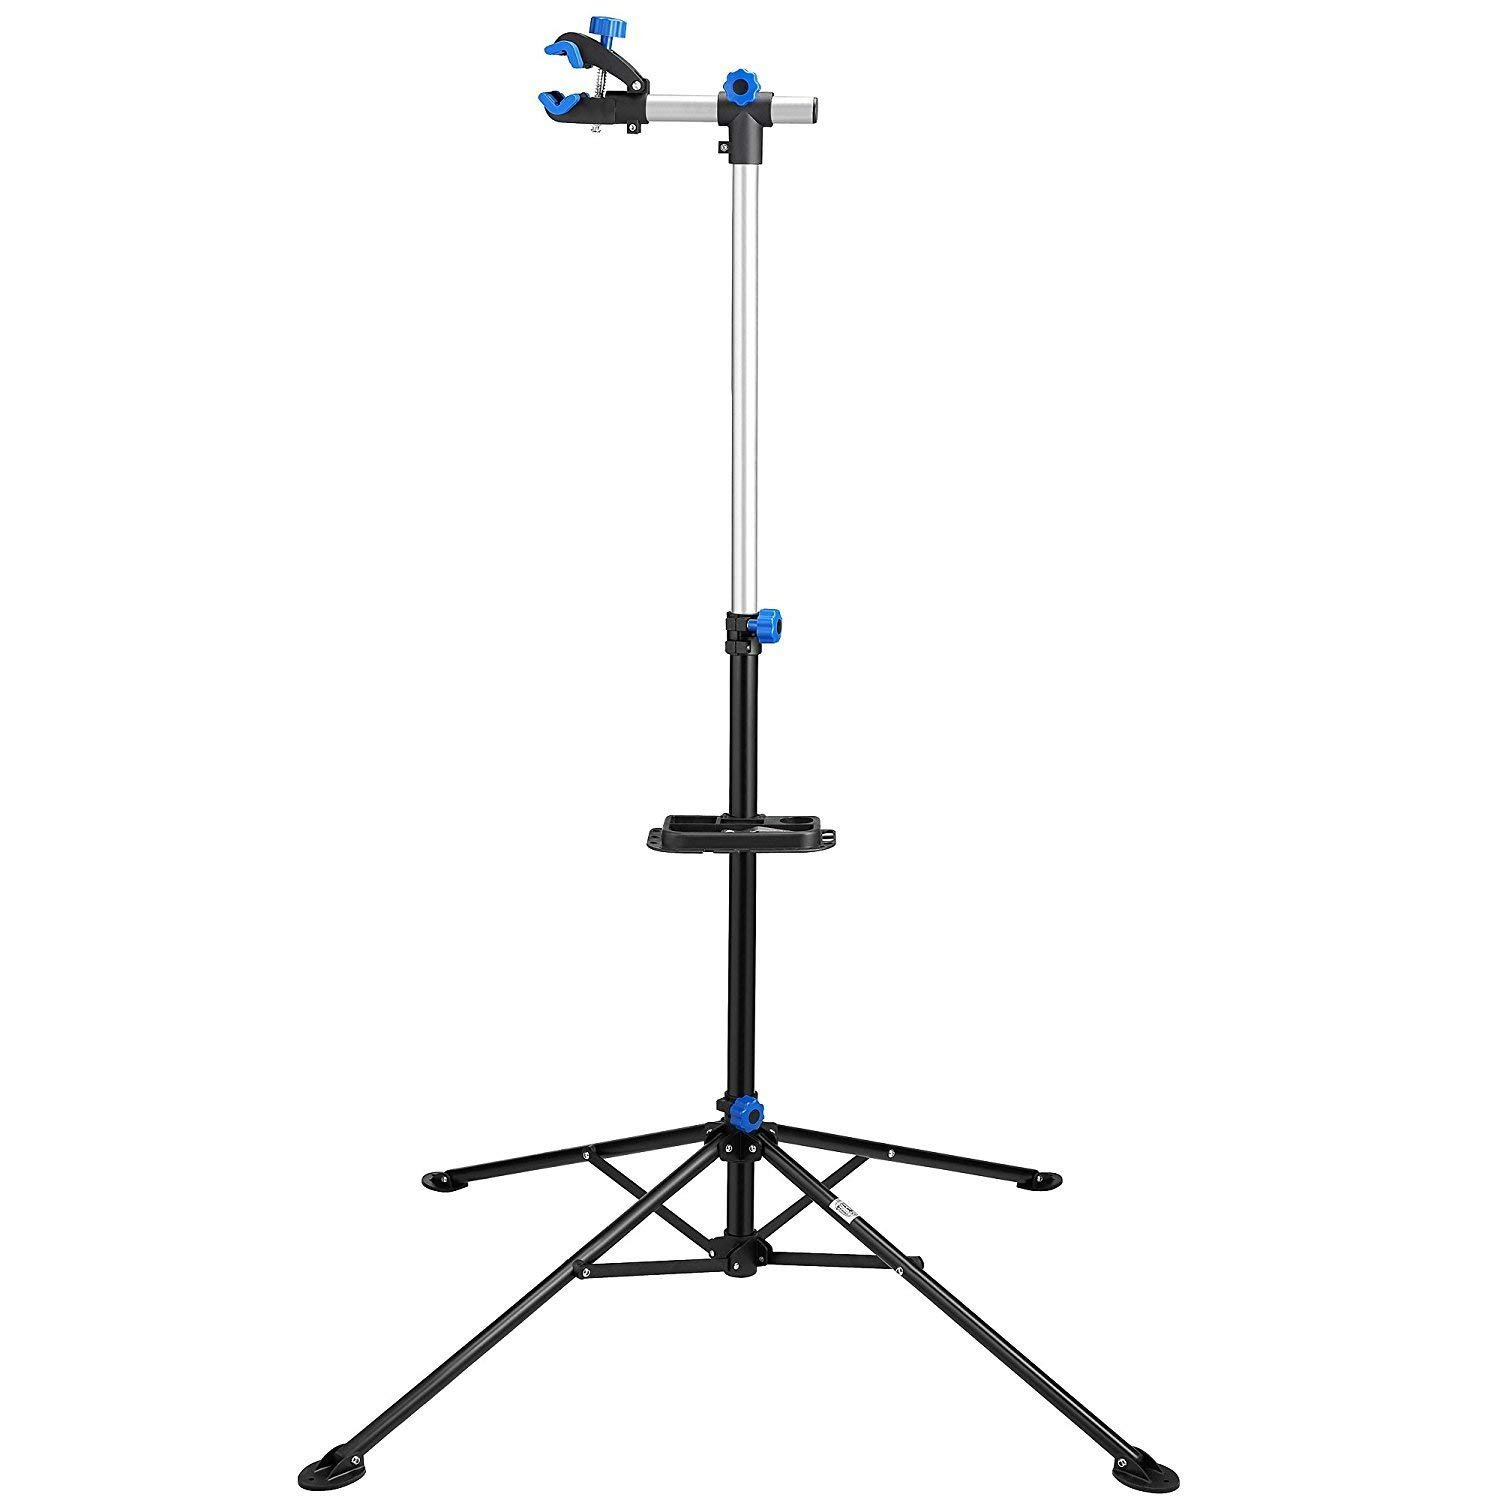 Bike Repair Stand Rack Foldable Cycle Bicycle Workstand Home Pro Mechanic Maintenance Tool Adjustable 41'' To 75'' With Telescopic Arm Clamp Lightweight and Portable by Noa Store (Image #5)